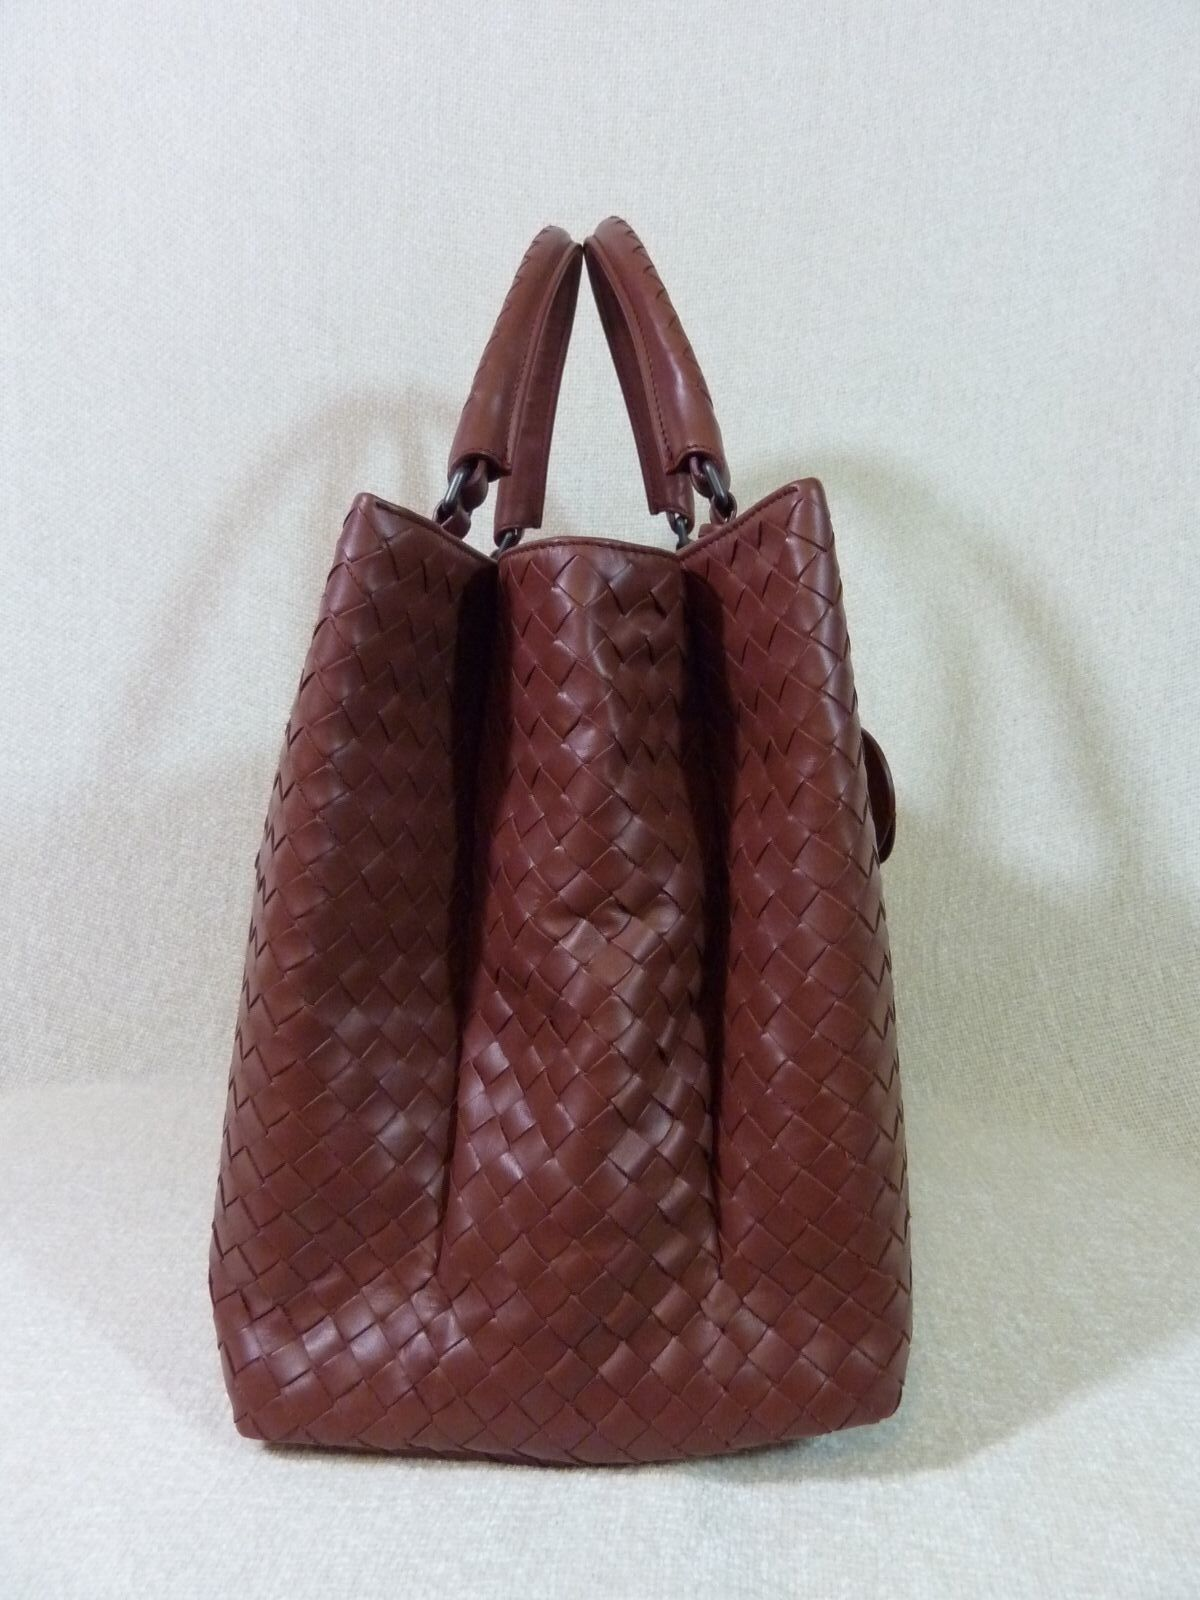 AUTH NWT Bottega Veneta Medium Roma Bag In Russet Intrecciato Calf Leather image 6